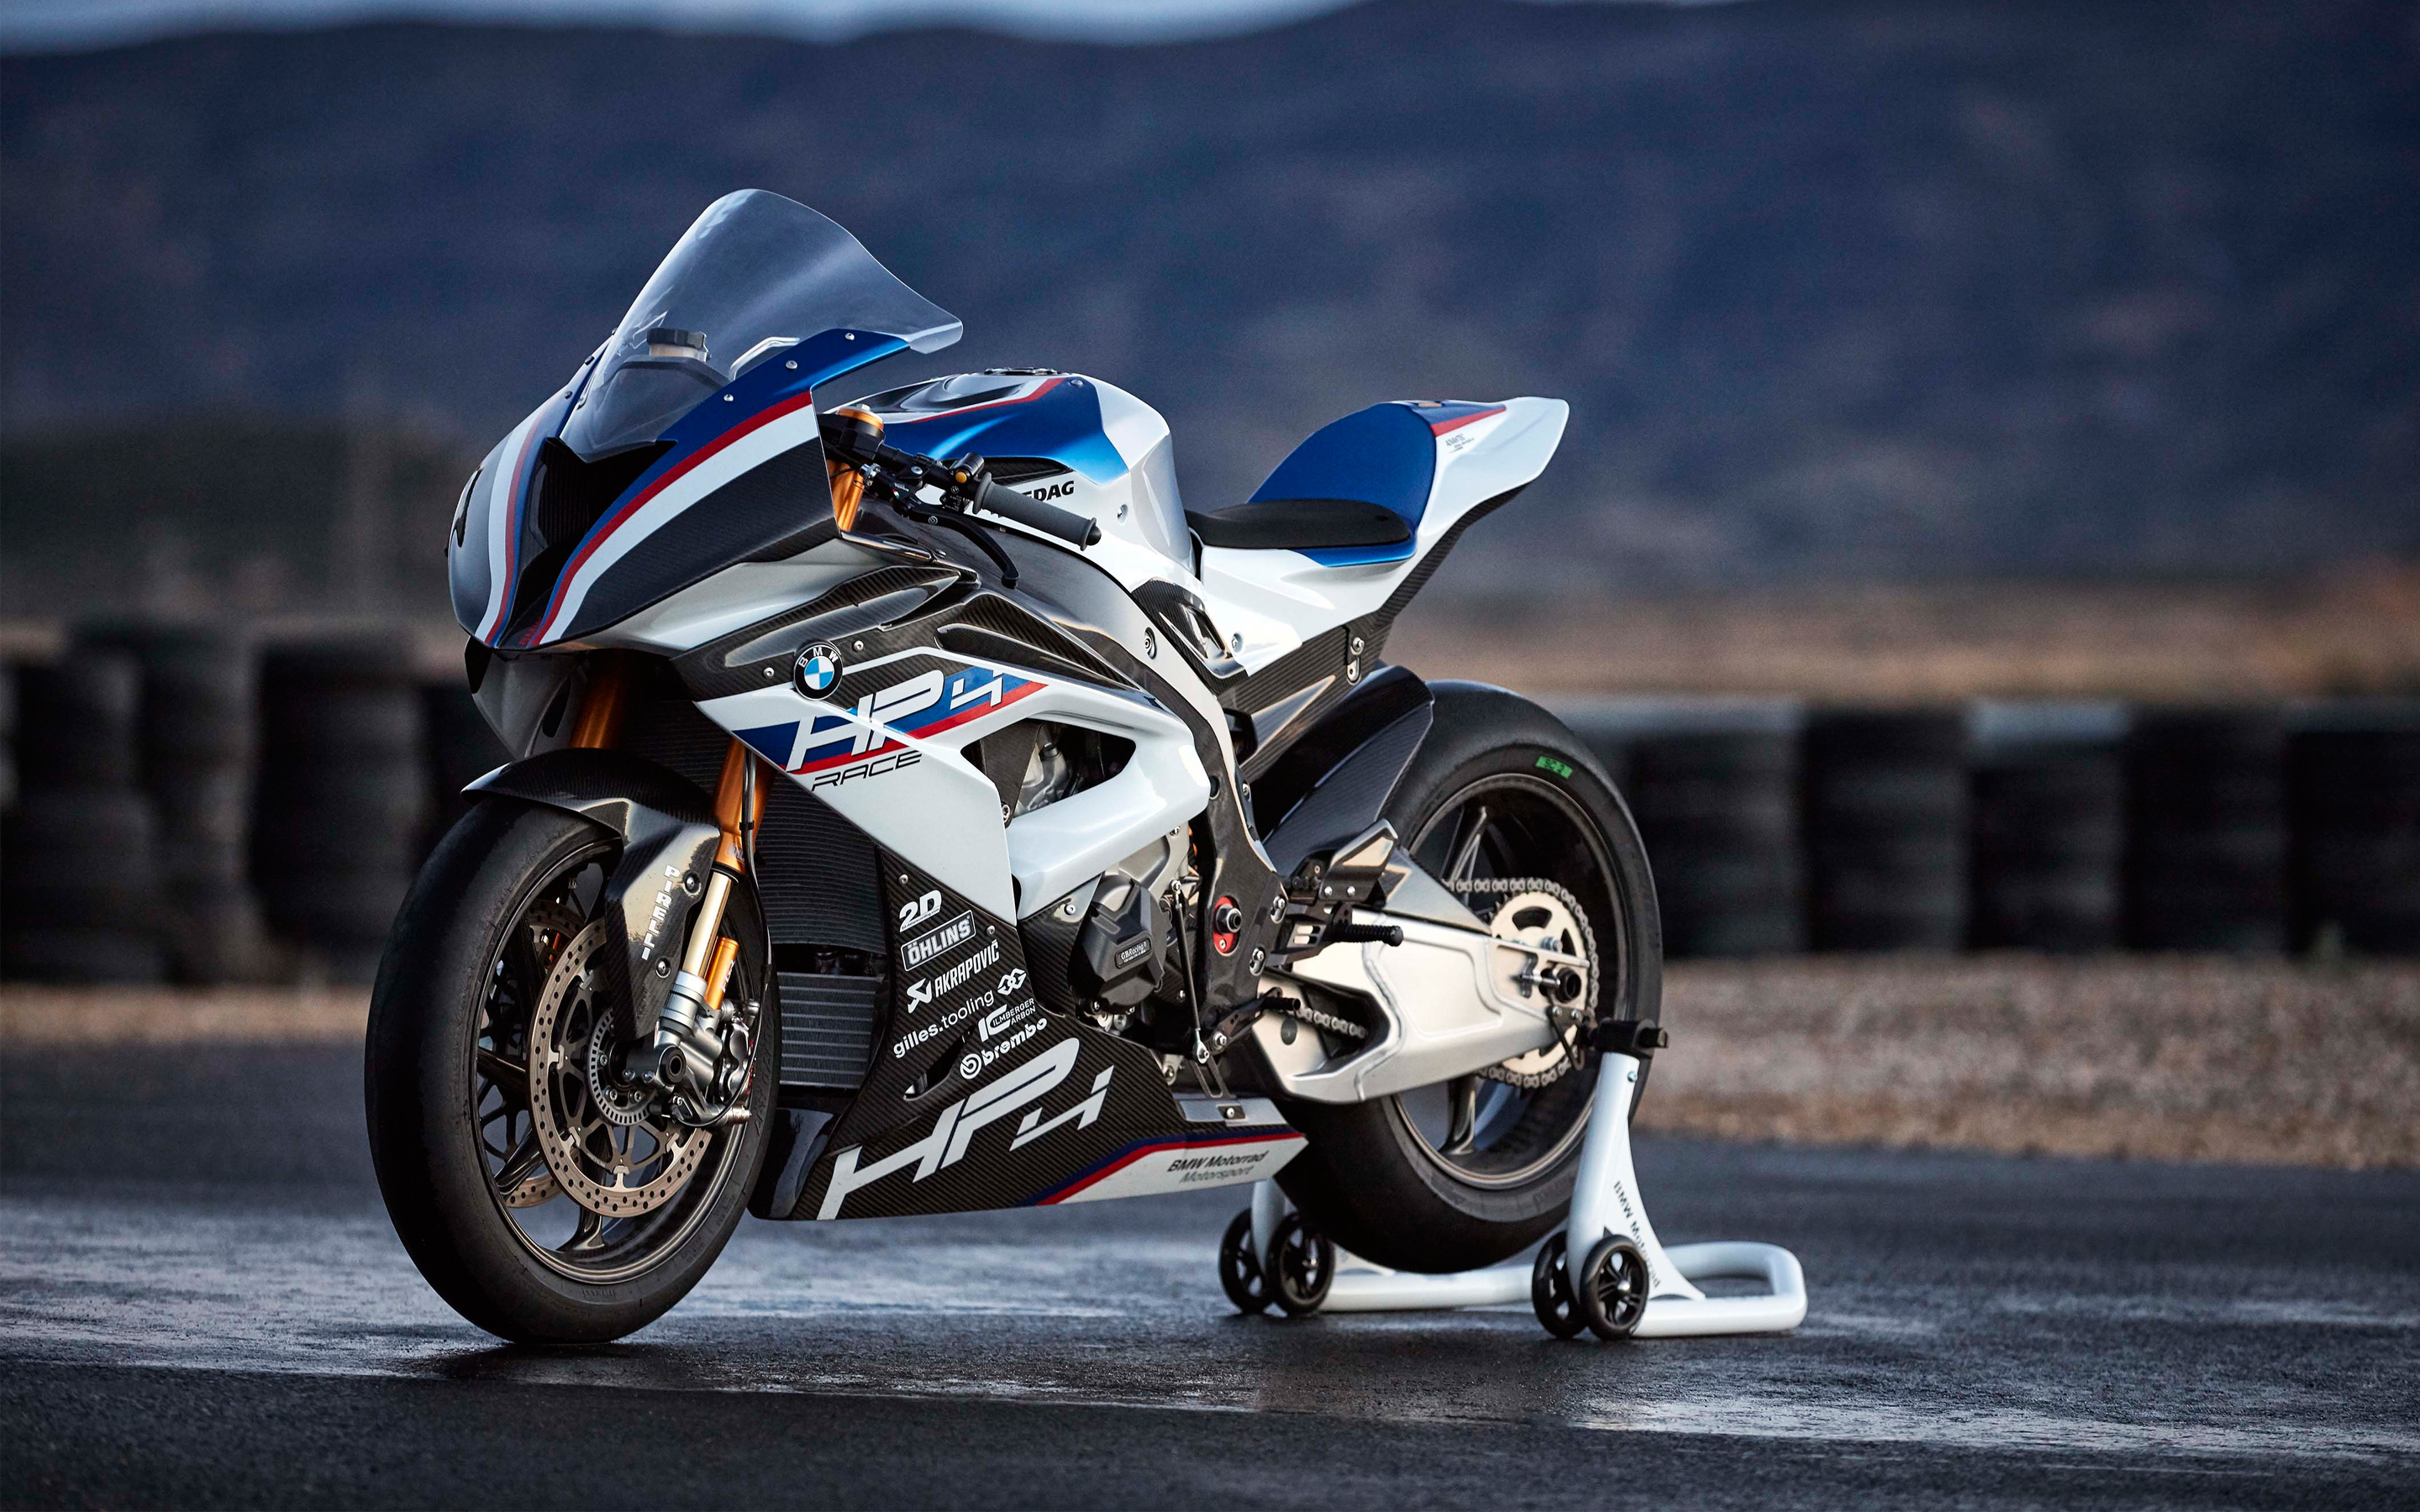 BMW HP4 White 4K Widescreen Desktop Wallpaper 1009 2880x1800 px 2880x1800